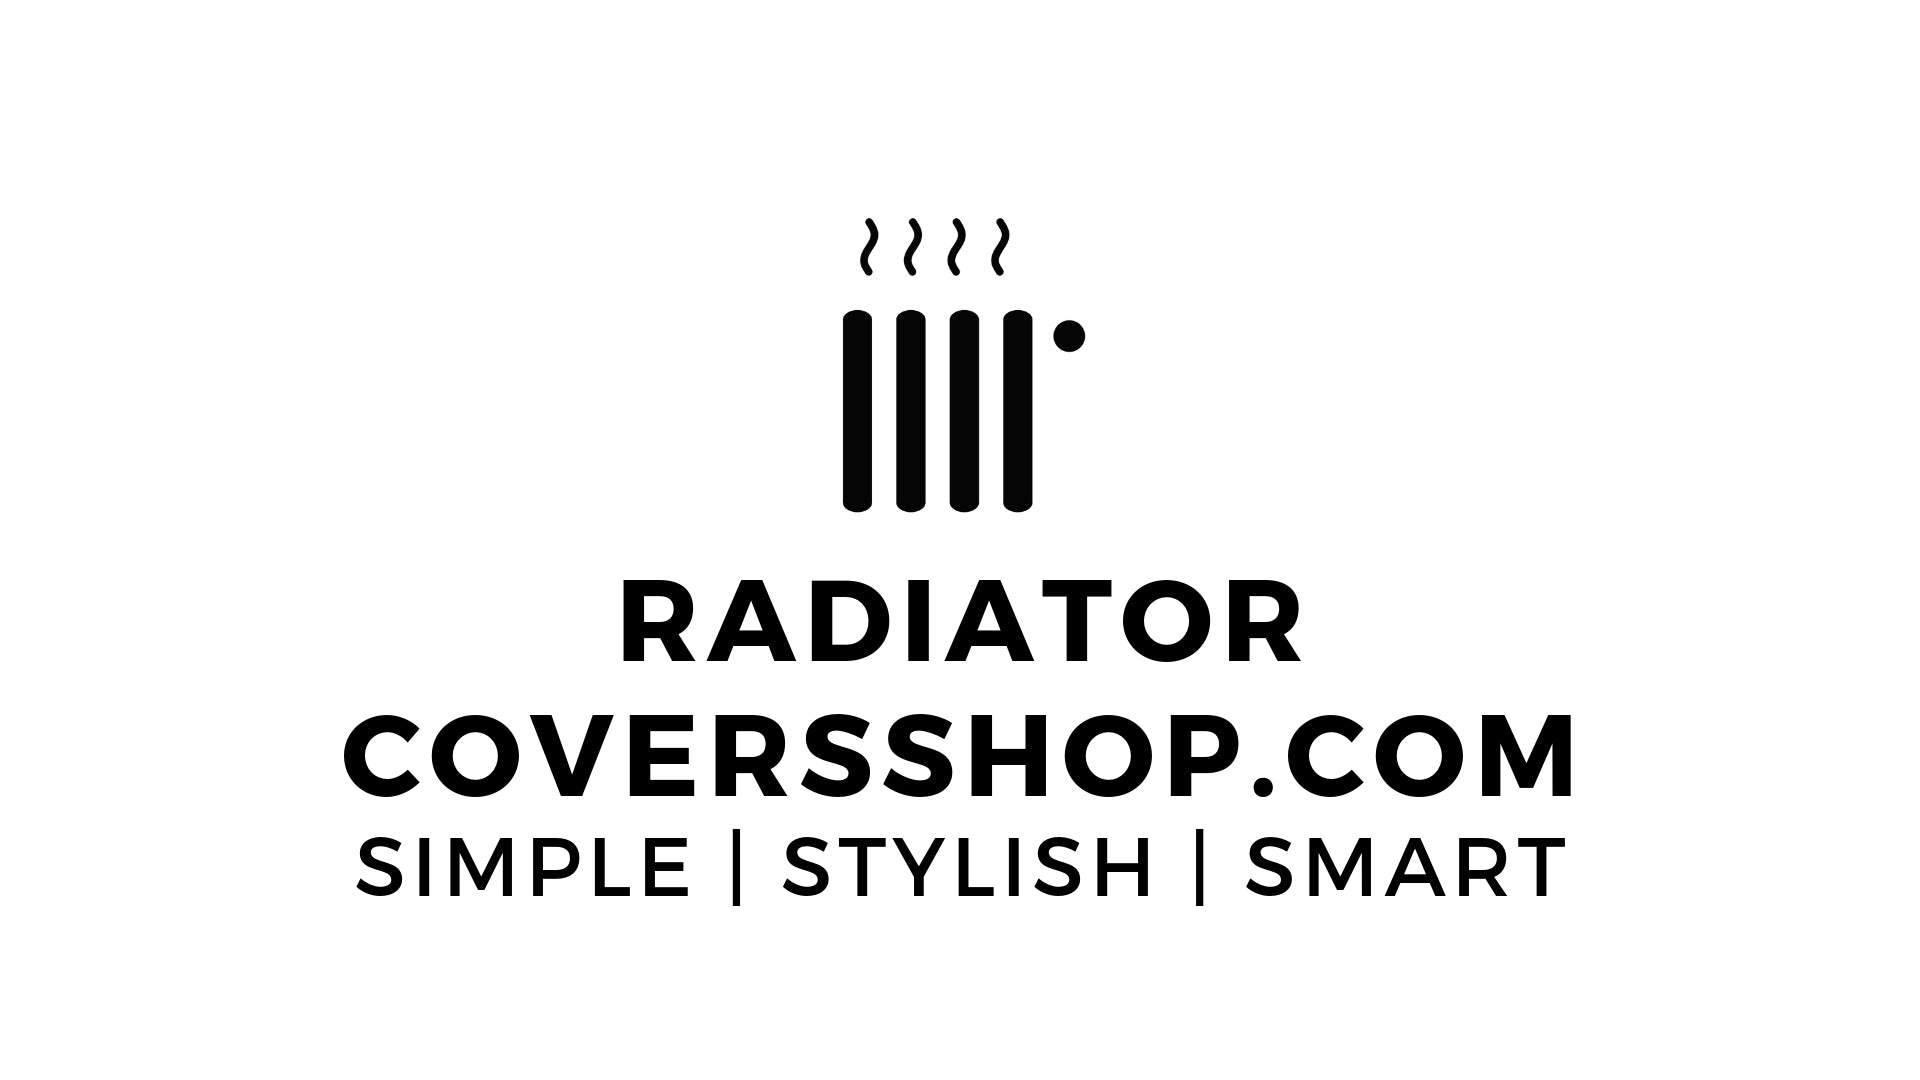 RadiatorCoversShop.com Simple Stylish Smart specialist site